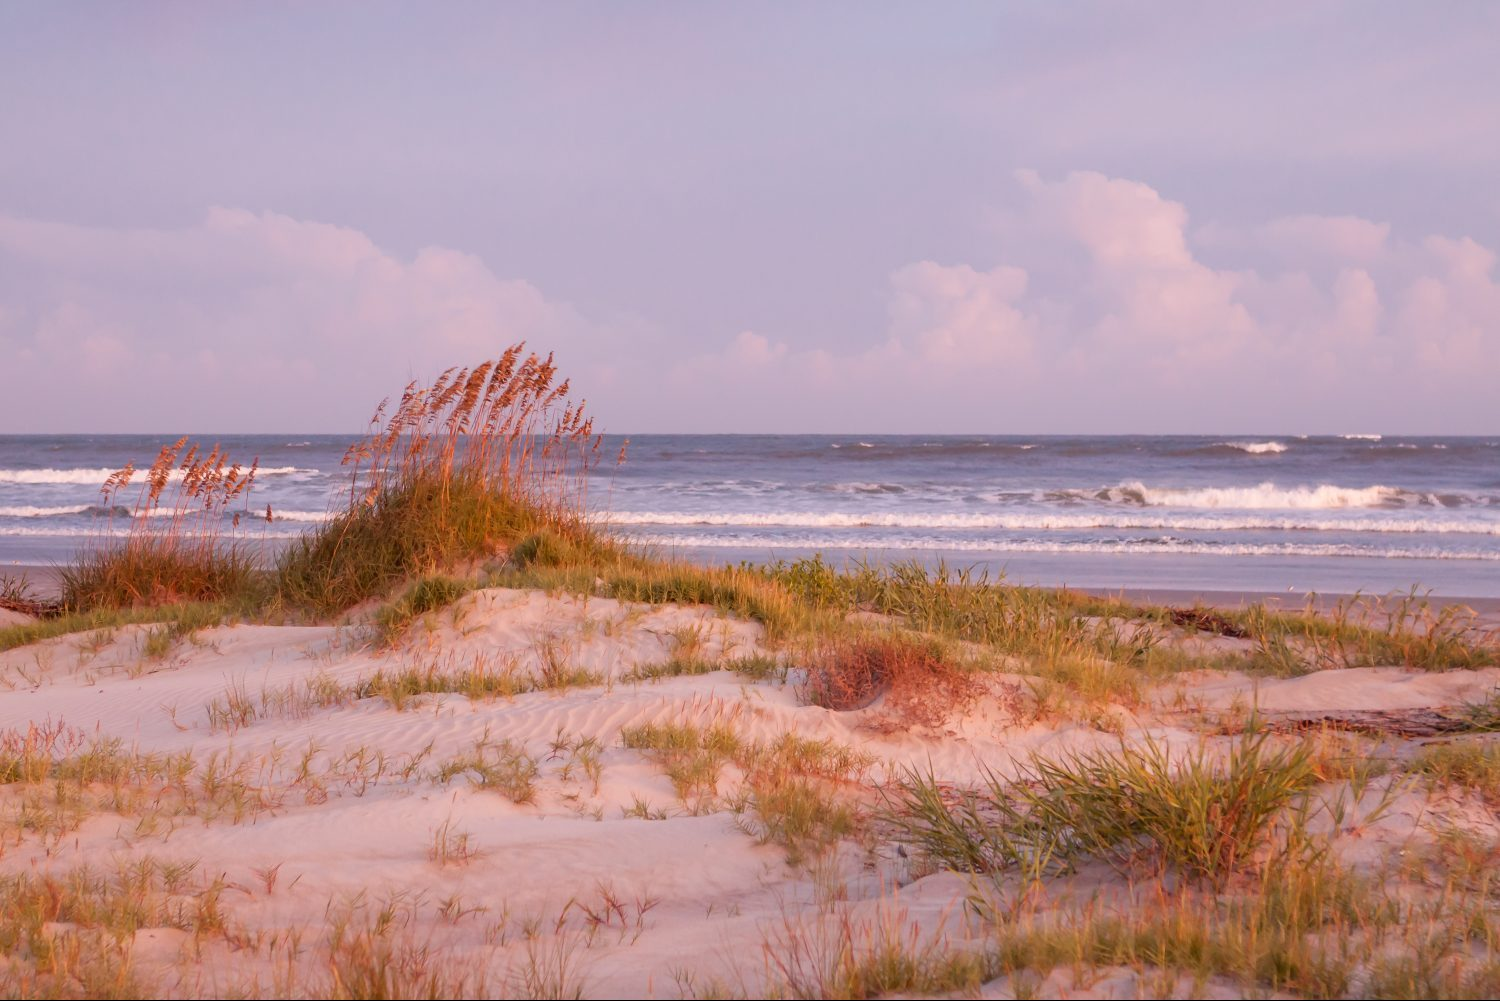 Beach and Ocean View at Kiawah Island